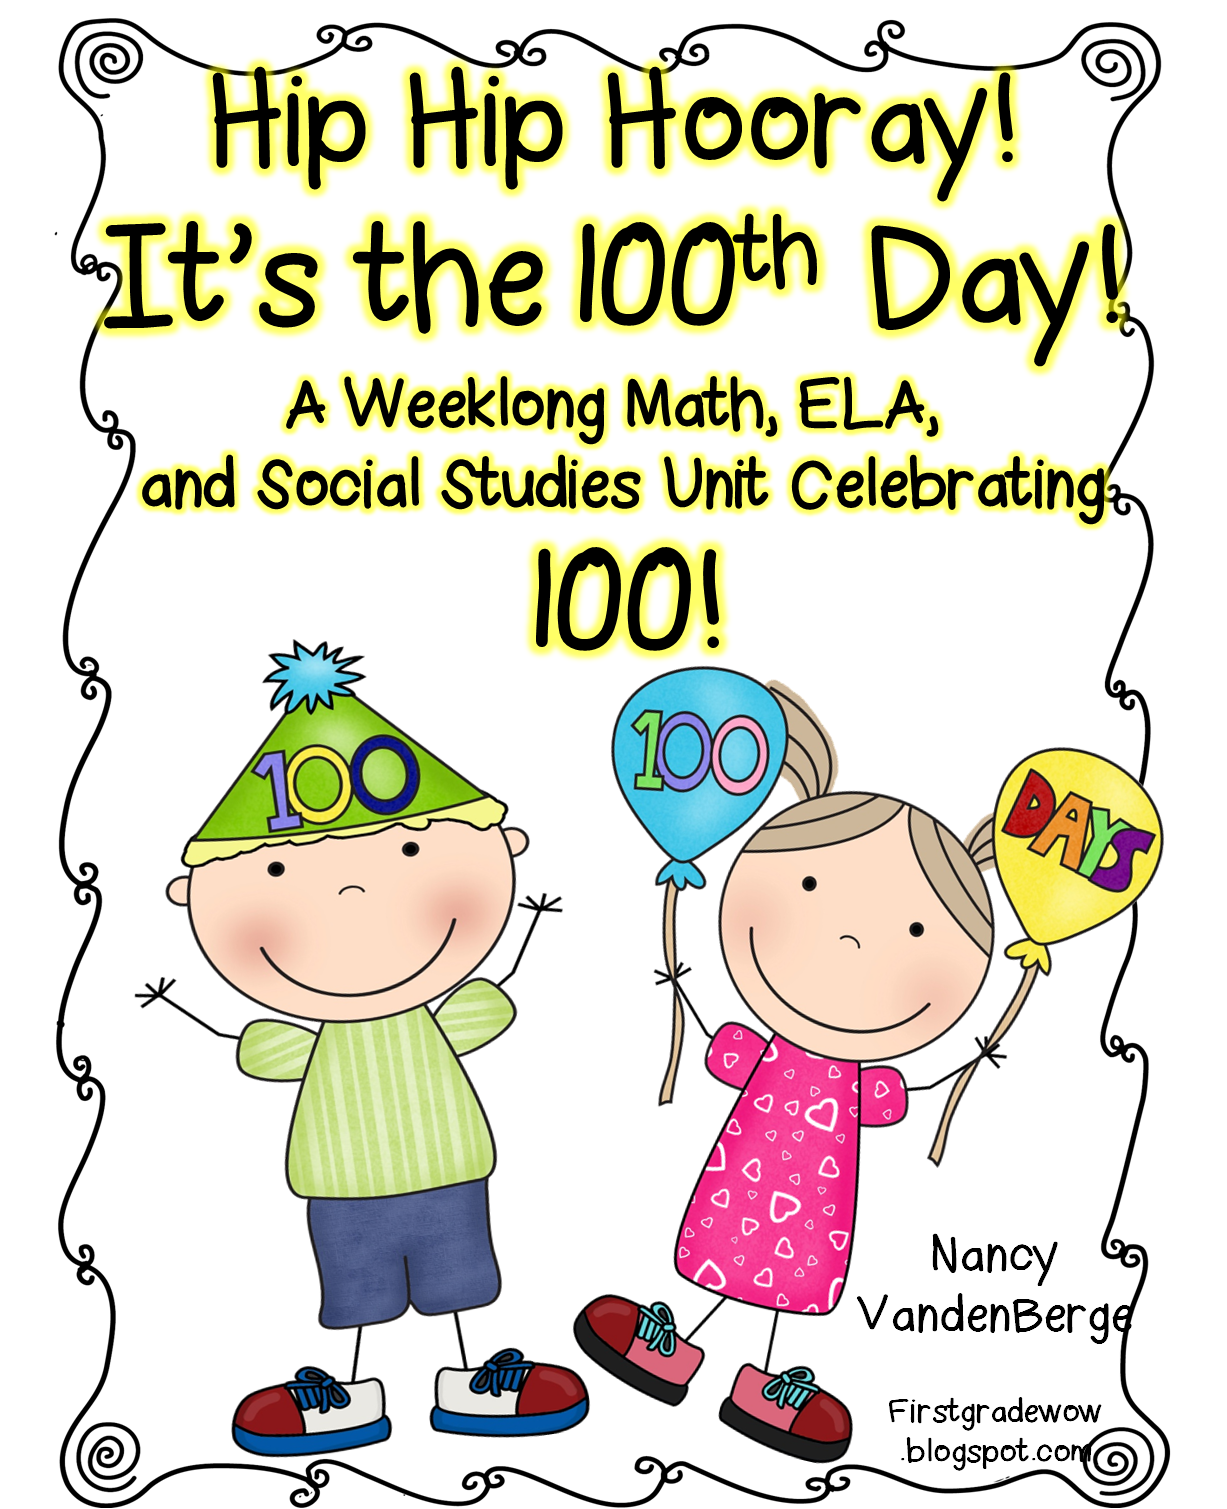 First Grade Wow The 100th Day Is Coming The 100th Day Is